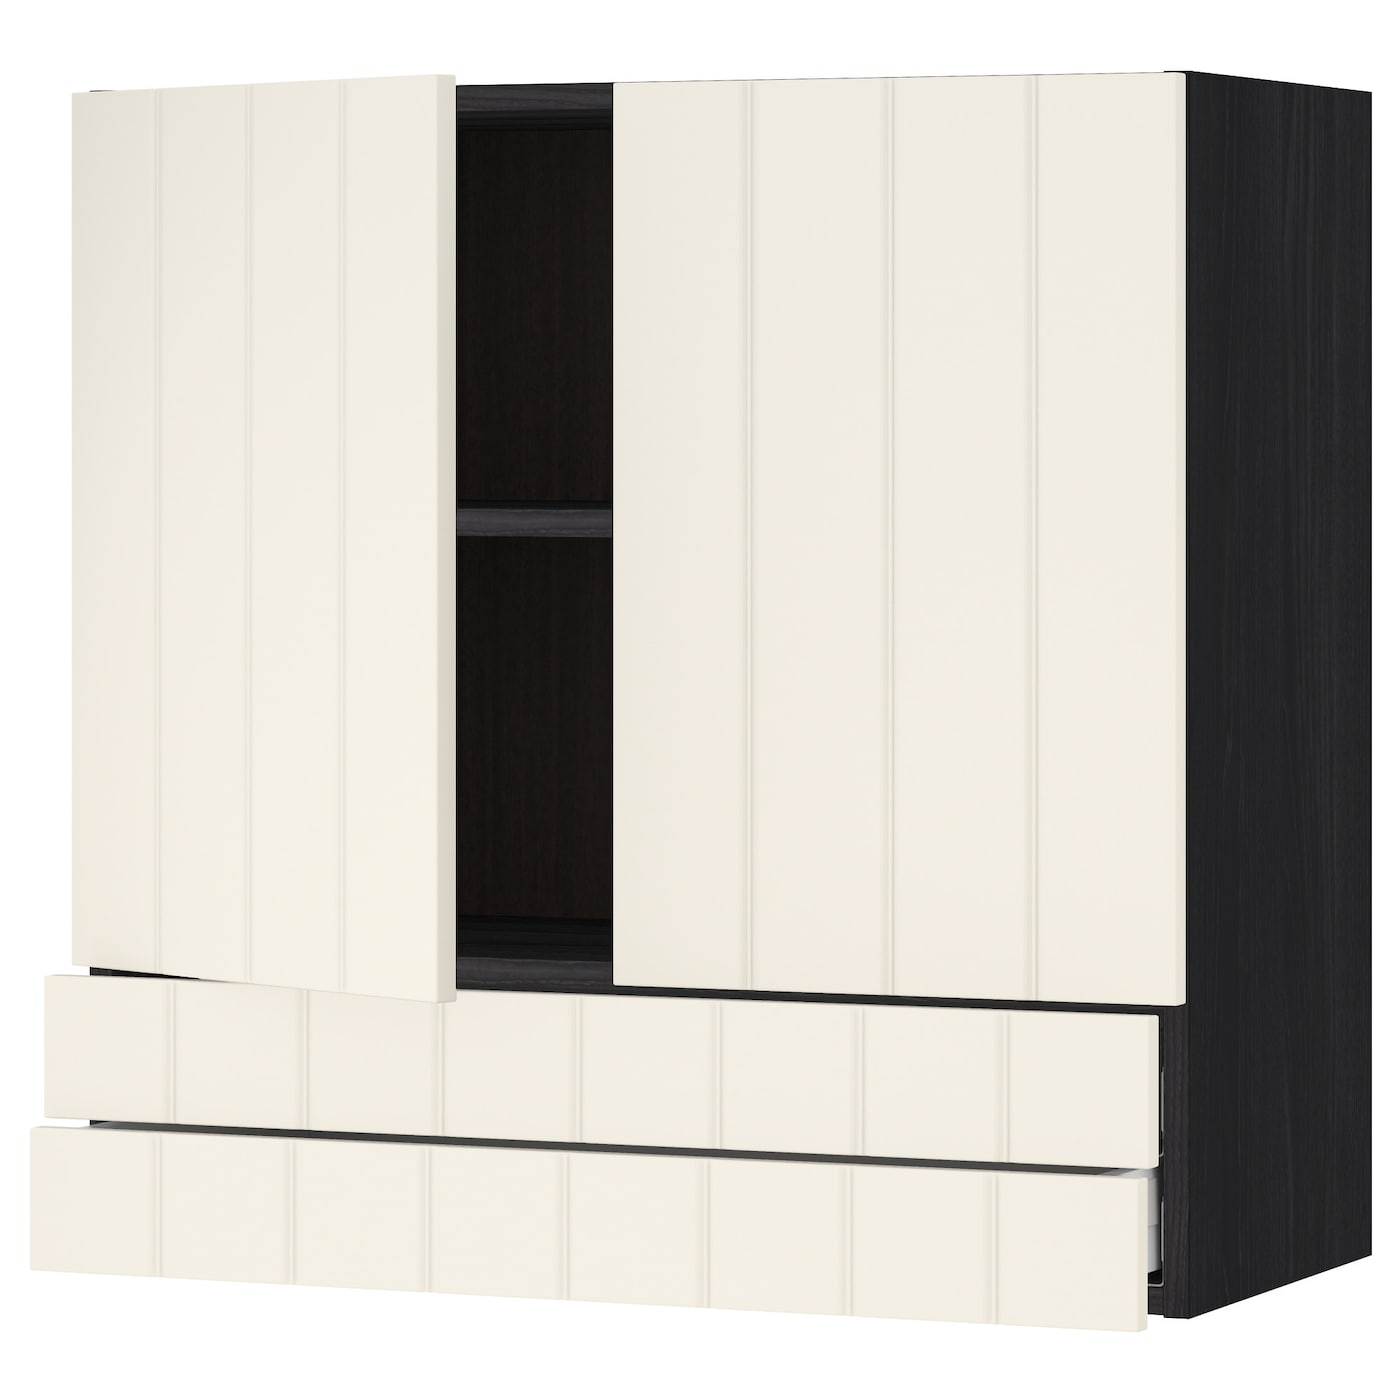 metod maximera l ment mural 2portes 2tiroirs noir hittarp blanc cass 80x80 cm ikea. Black Bedroom Furniture Sets. Home Design Ideas